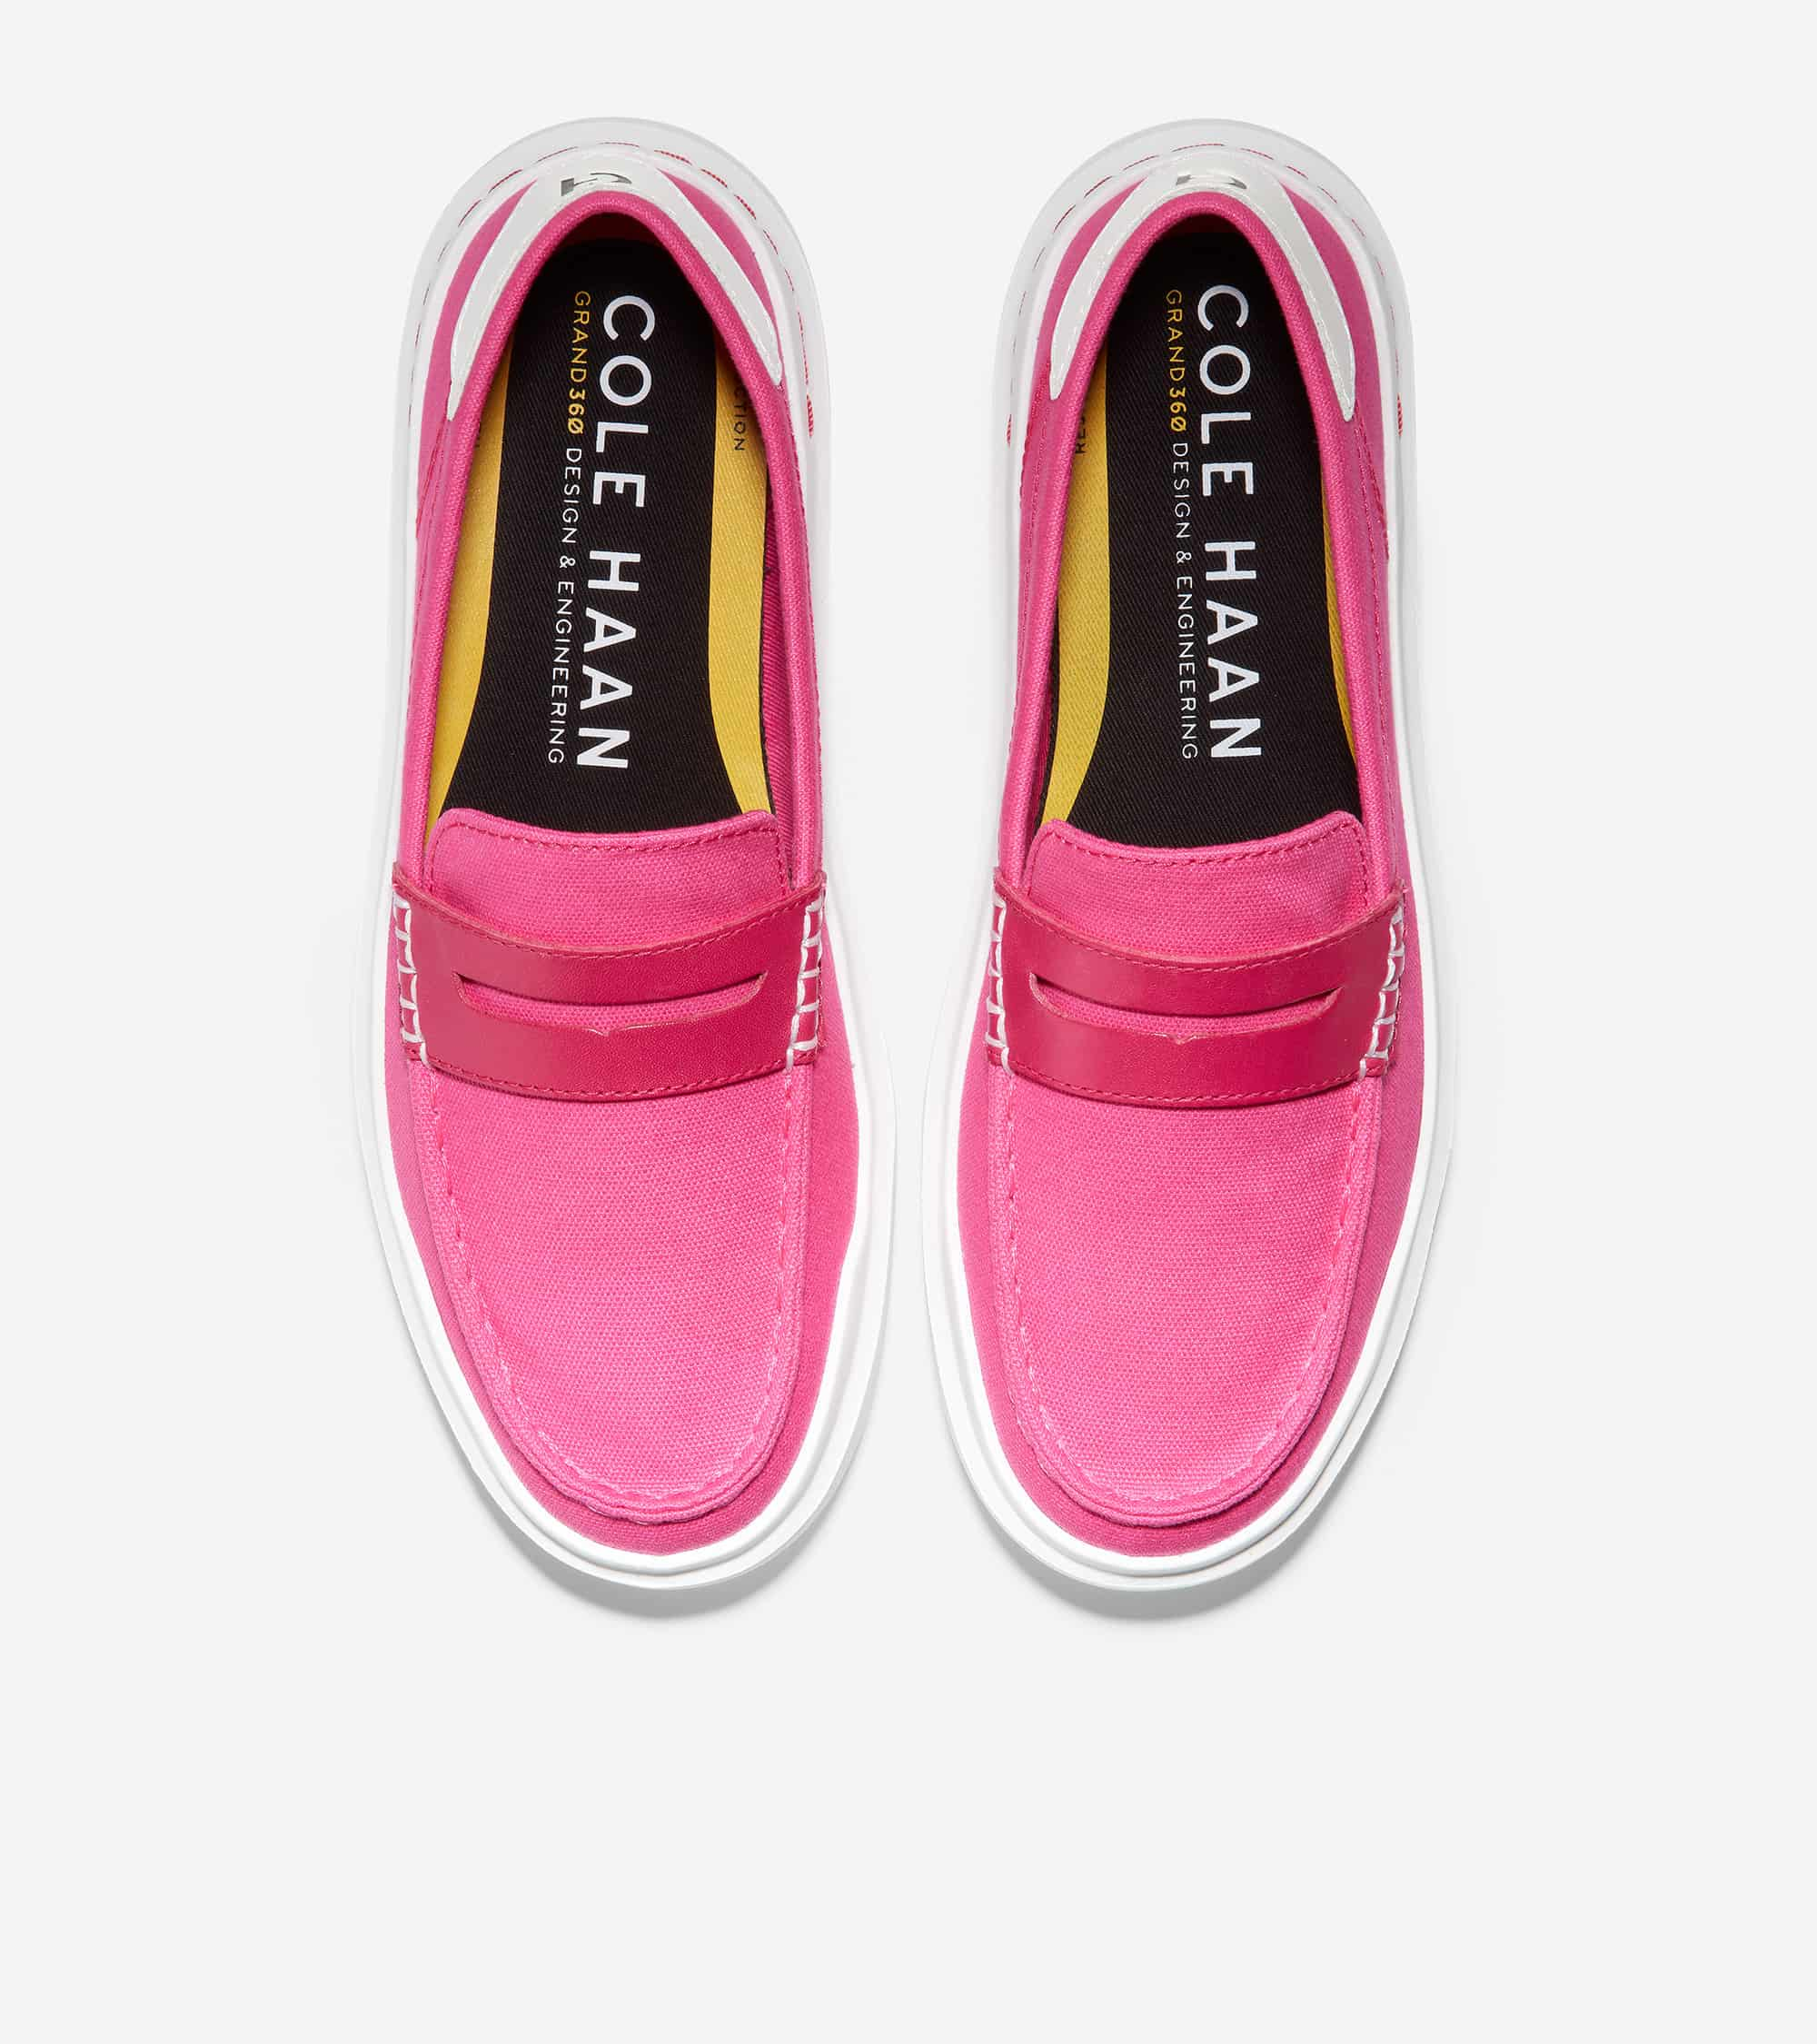 GRANDPRO RALLY CANVAS PENNY LOAFER BRIGHT BERRY / OPTIC WHITE